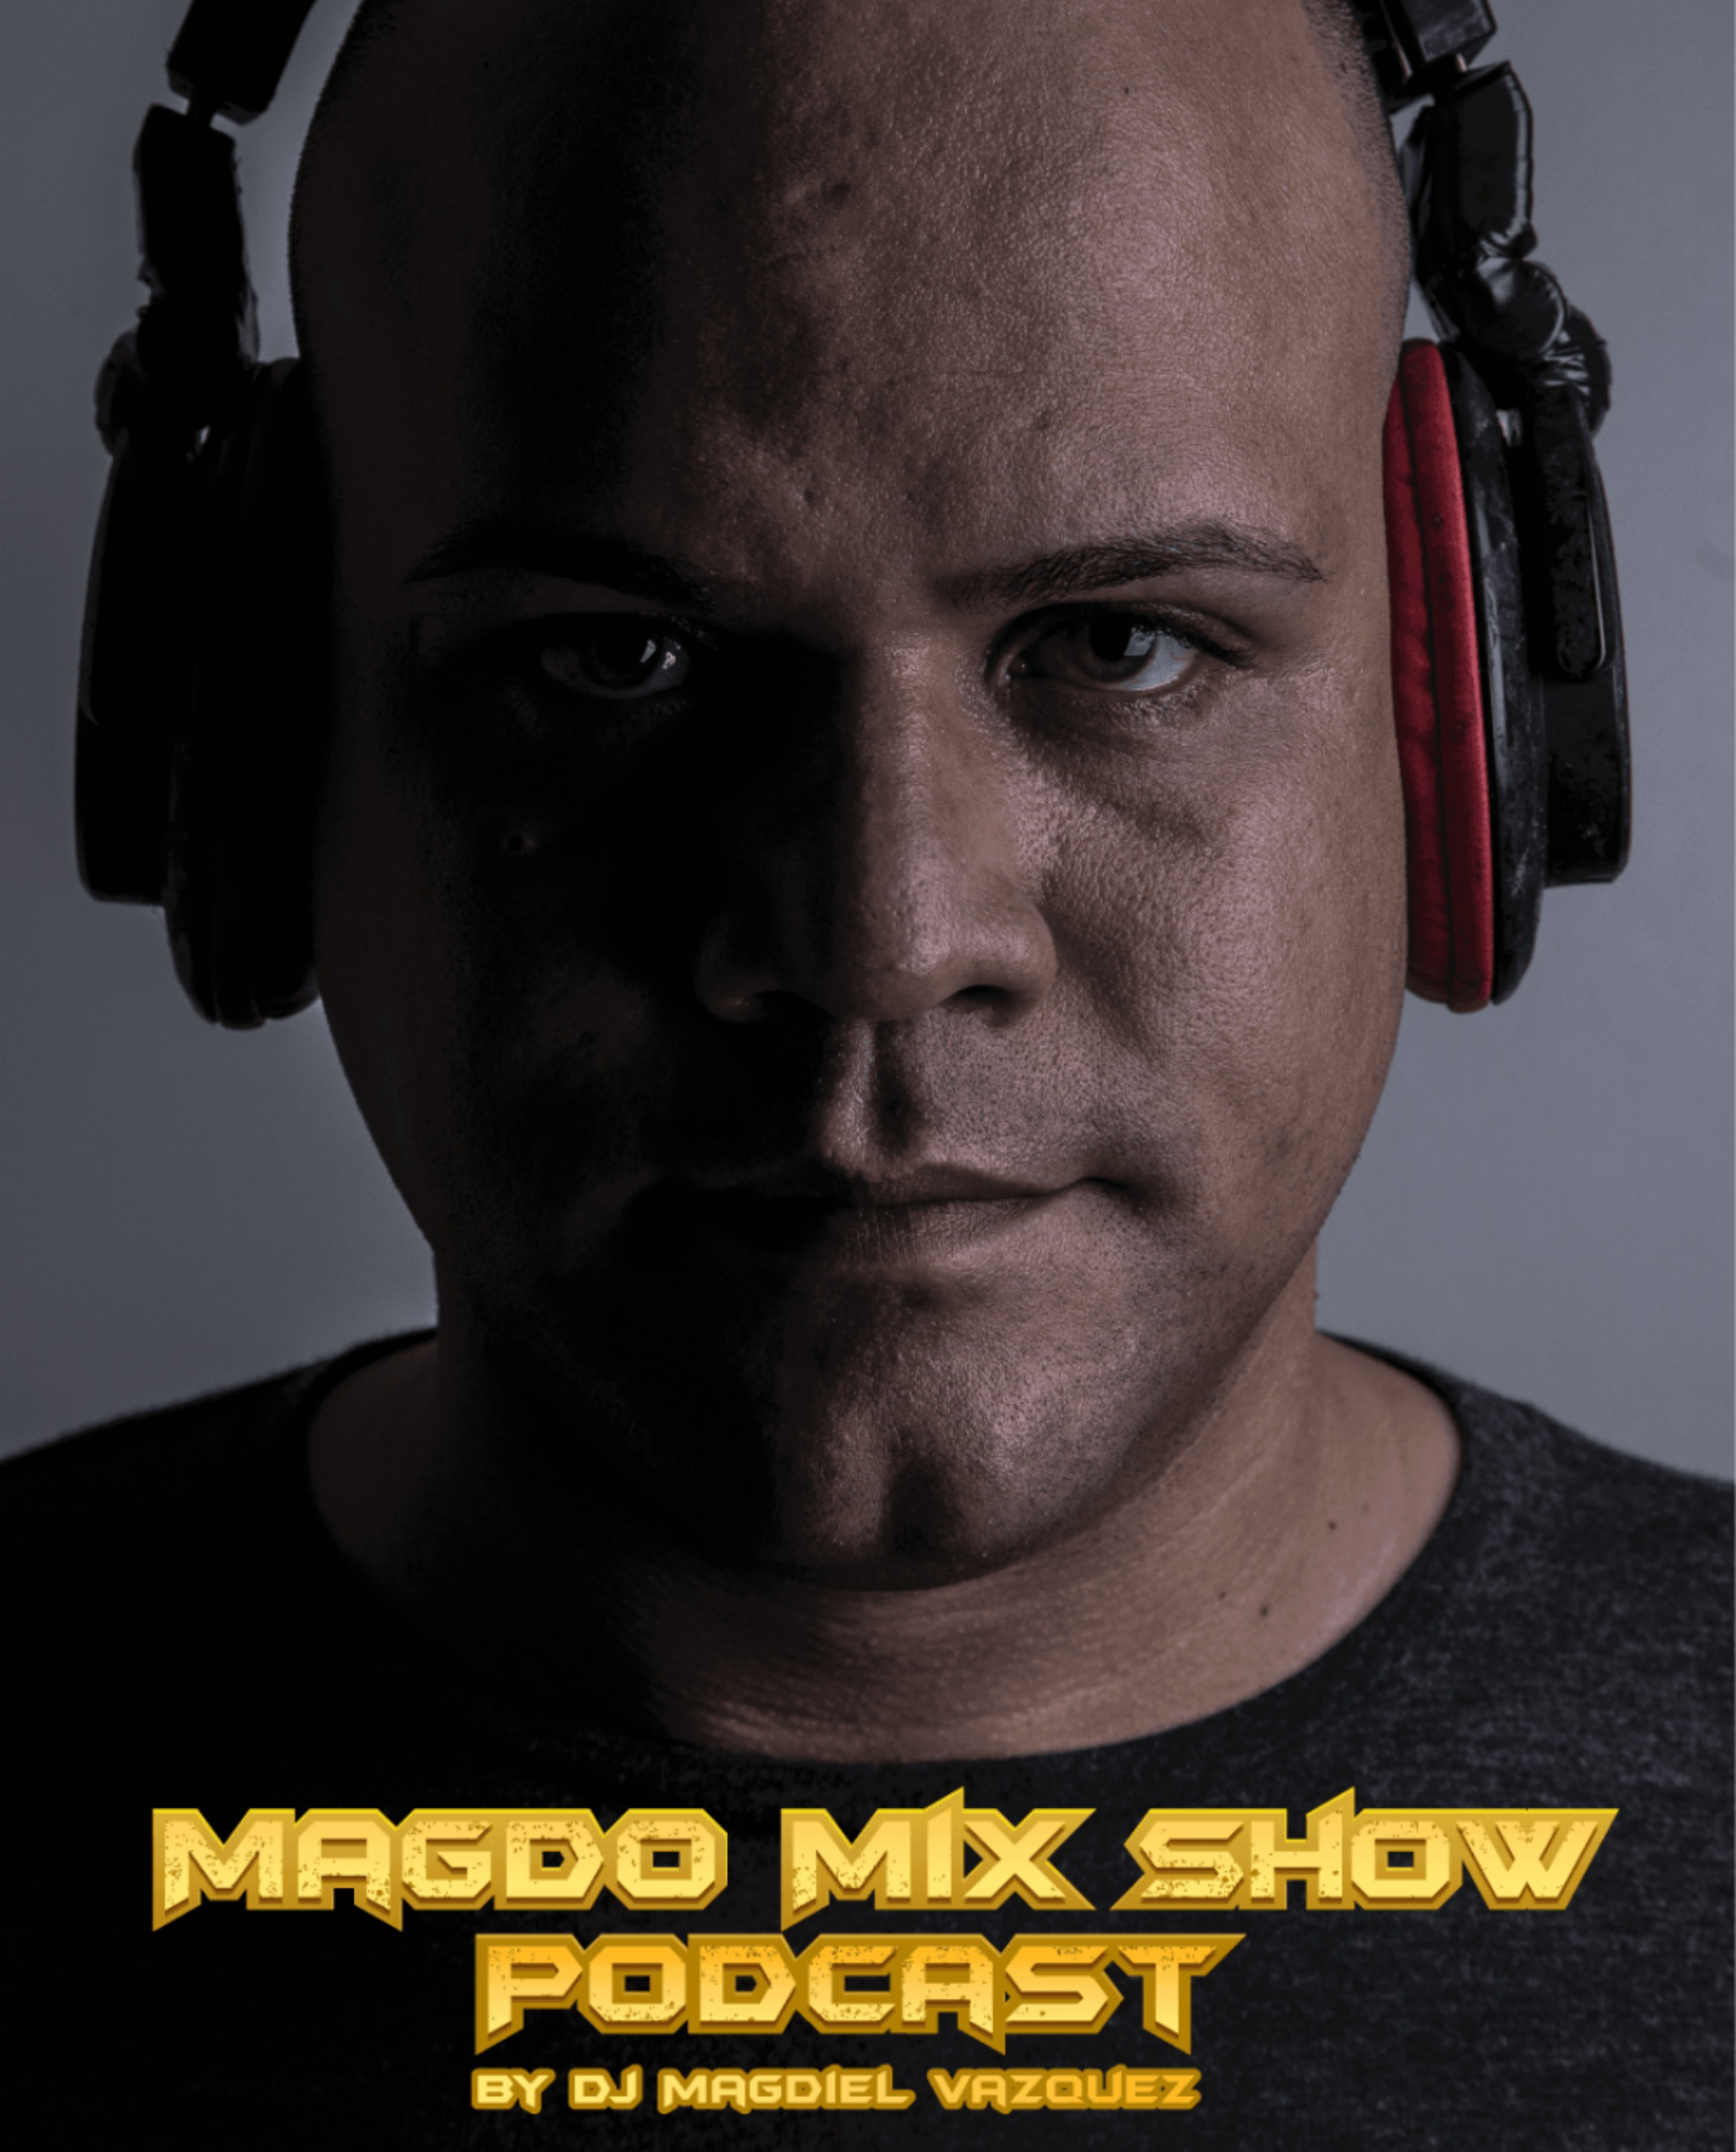 Magdo Mix Show Podcast